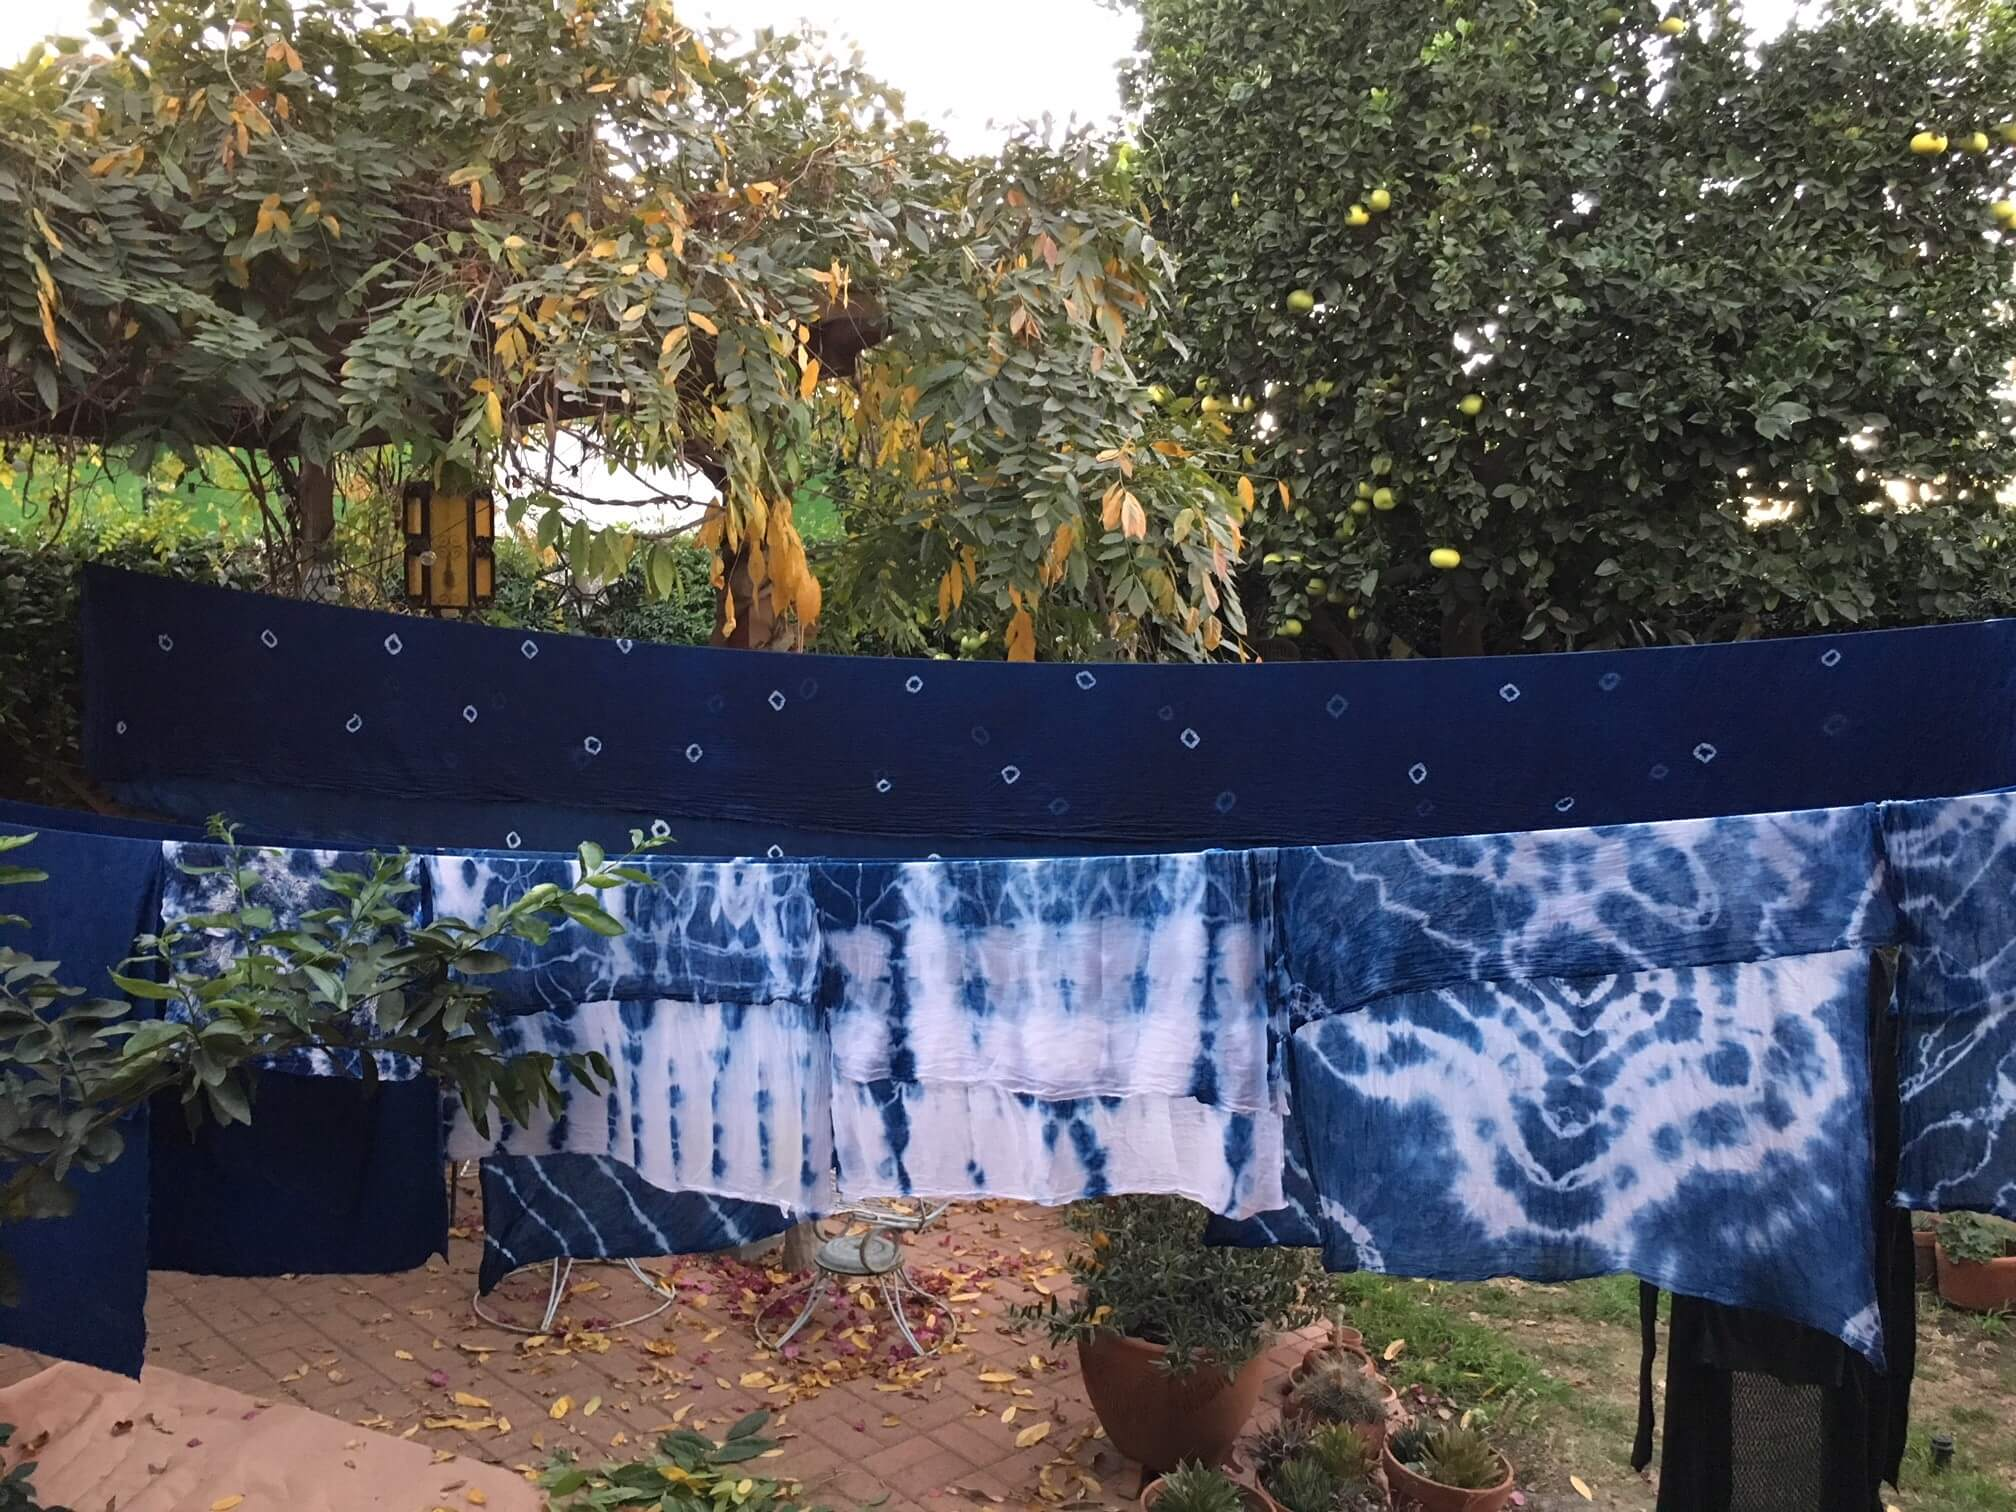 Blue fabric with tie-dyed designs hang outside on a clothesline